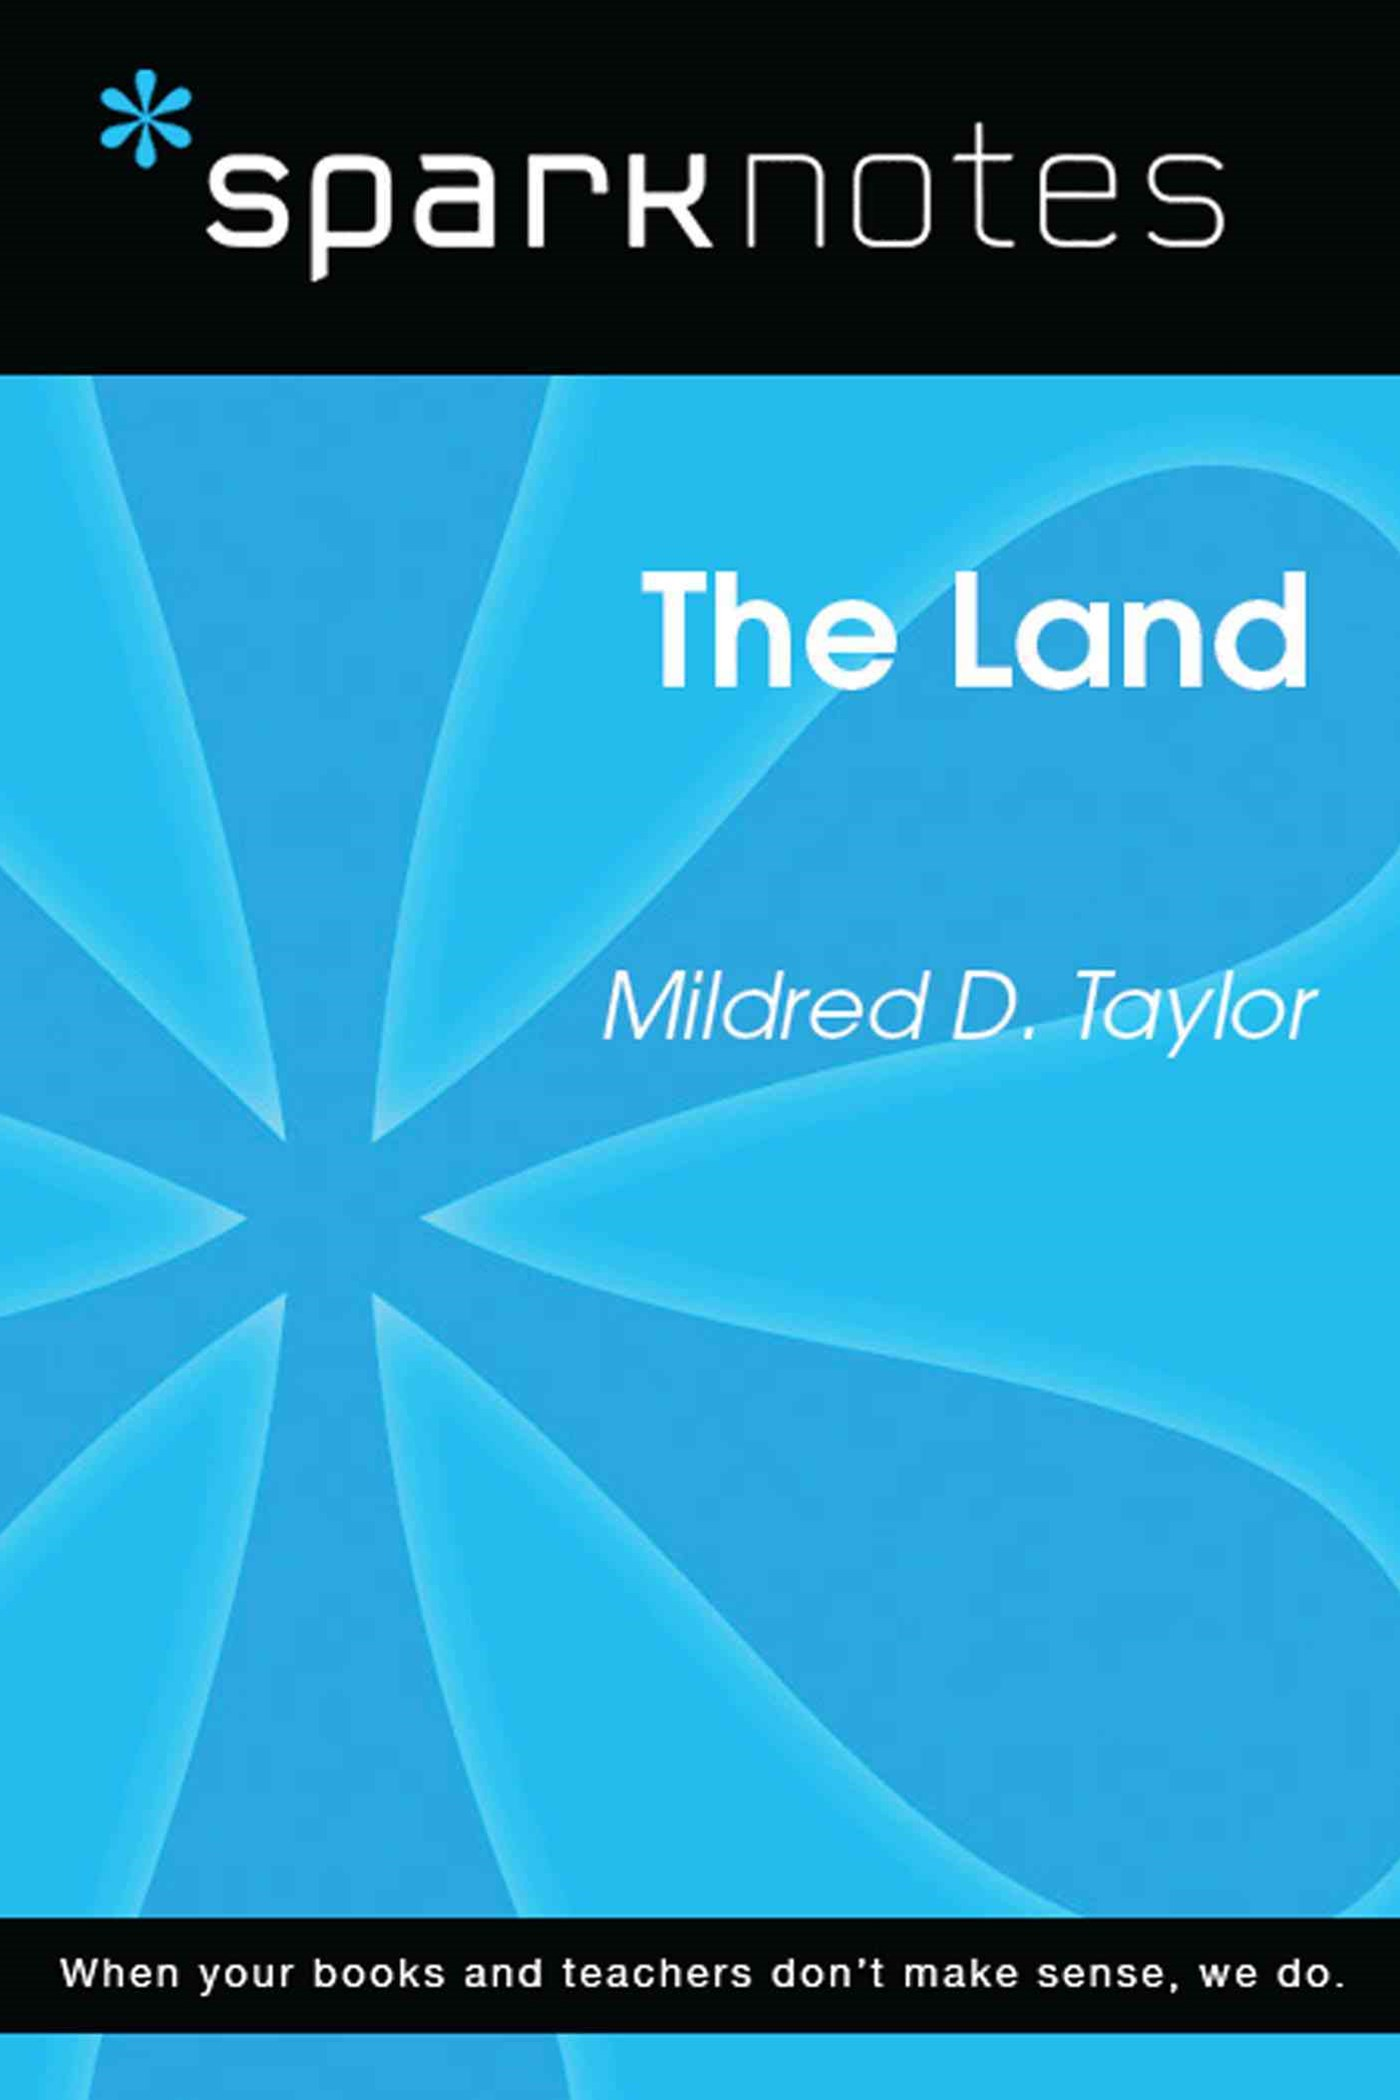 The Land (SparkNotes Literature Guide)